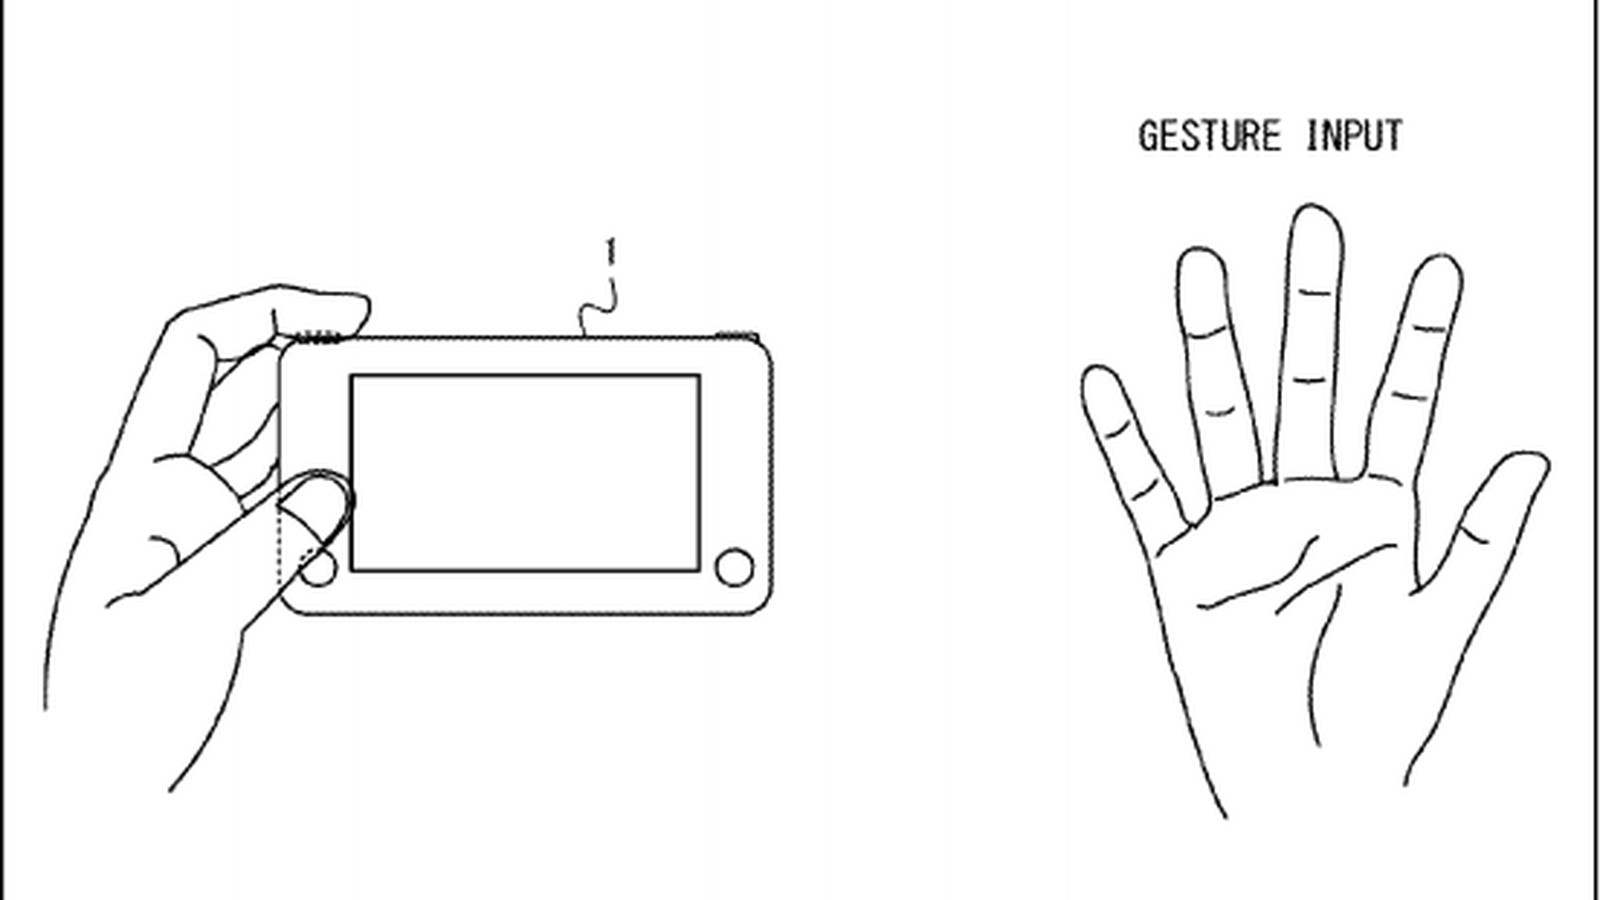 Nintendo Patents For Accessories Gesture Controls Hint At